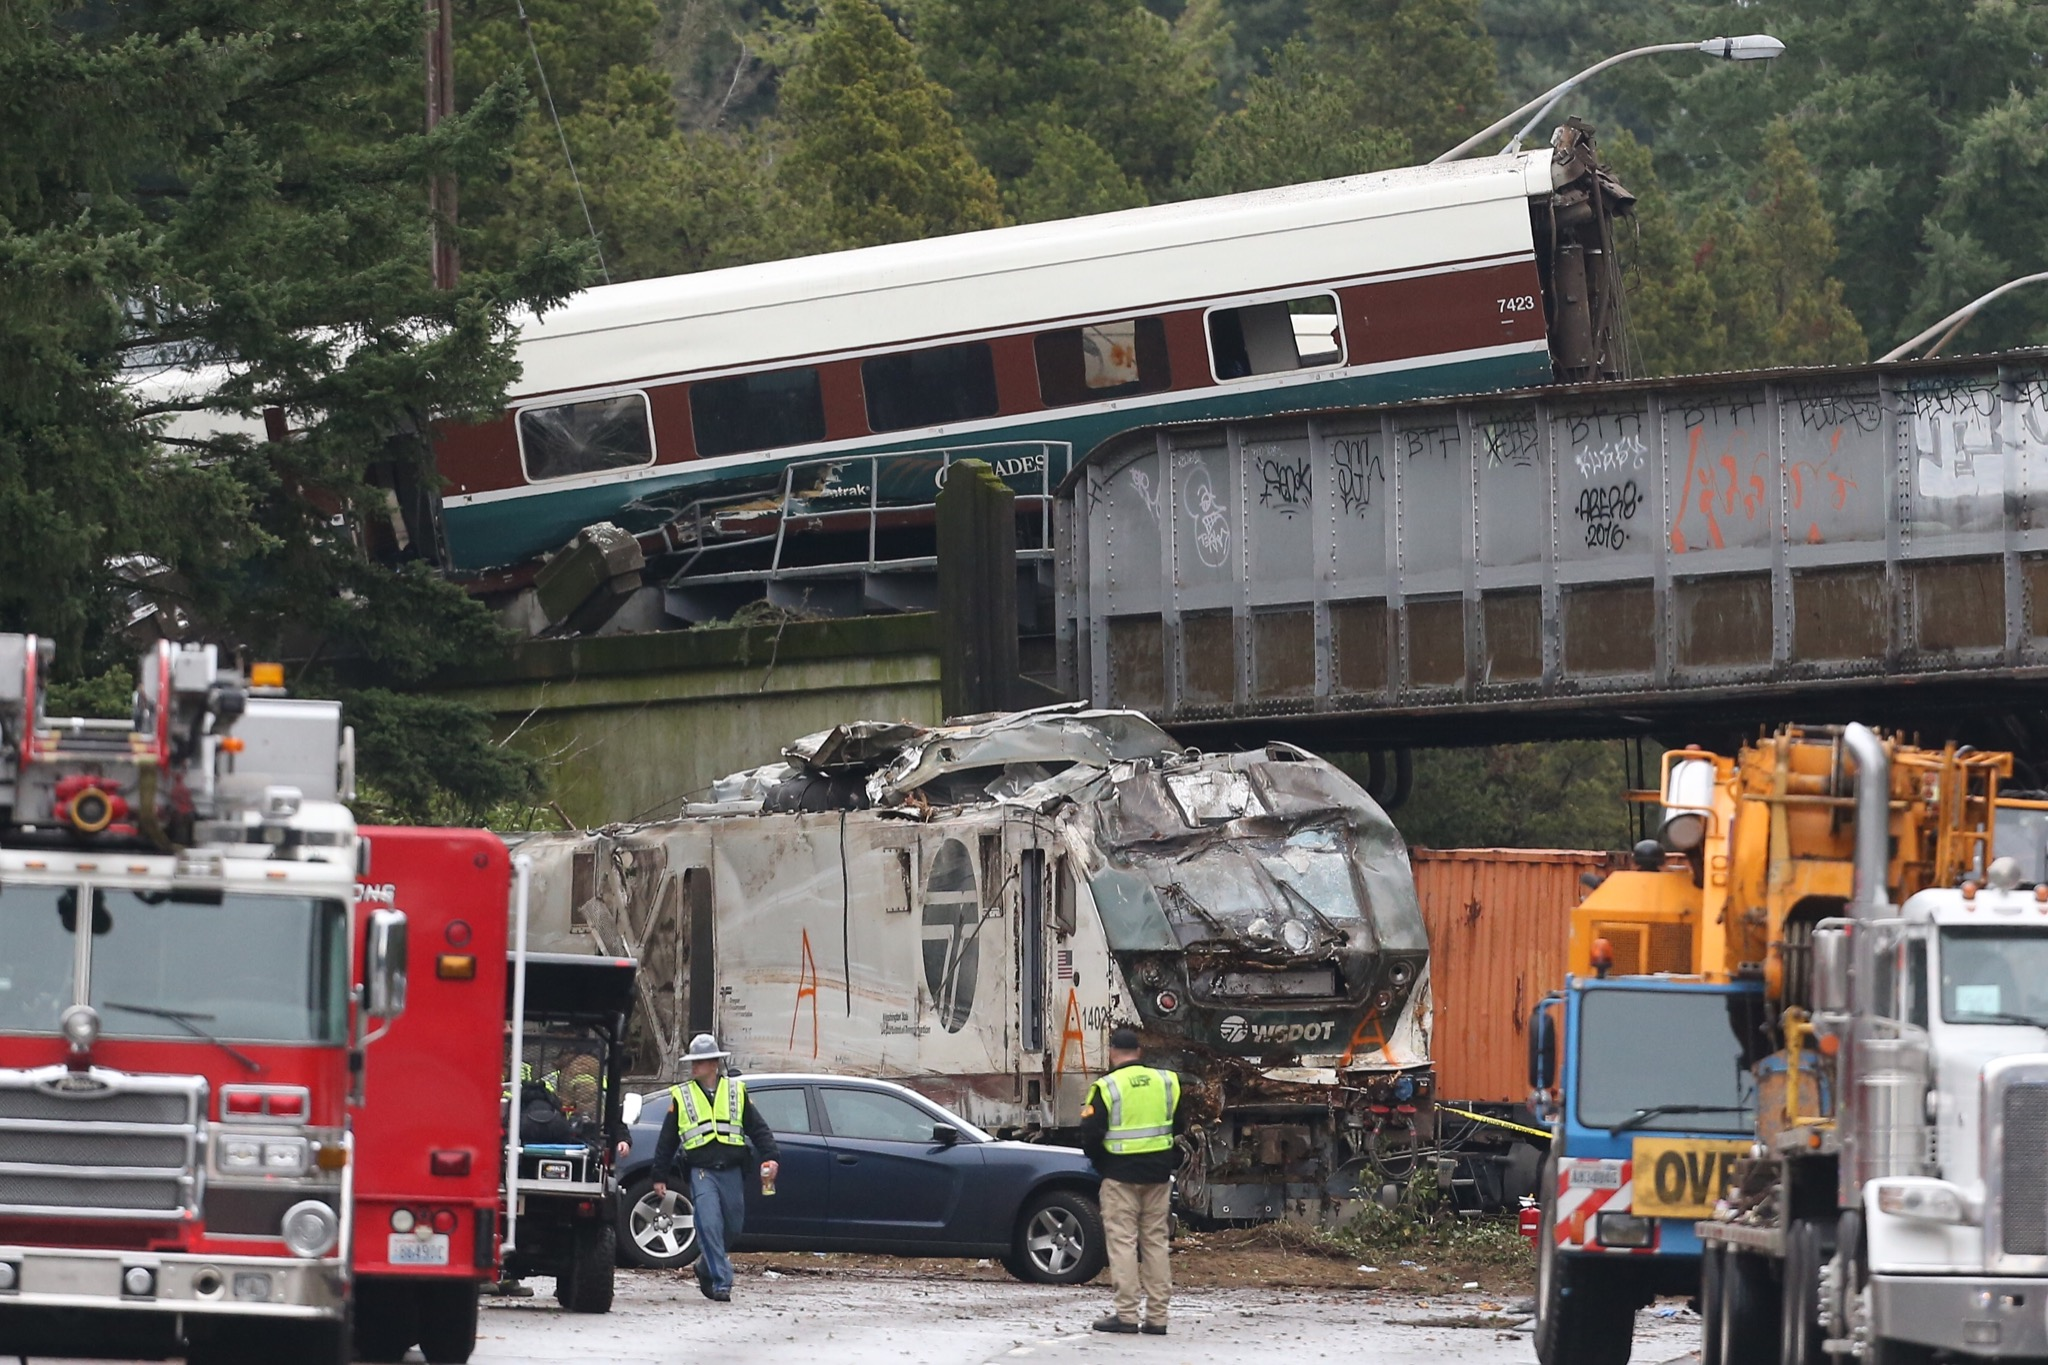 Ntsb Train Was Traveling Twice The Speed Limit Before Derailment I5 Engine Diagram